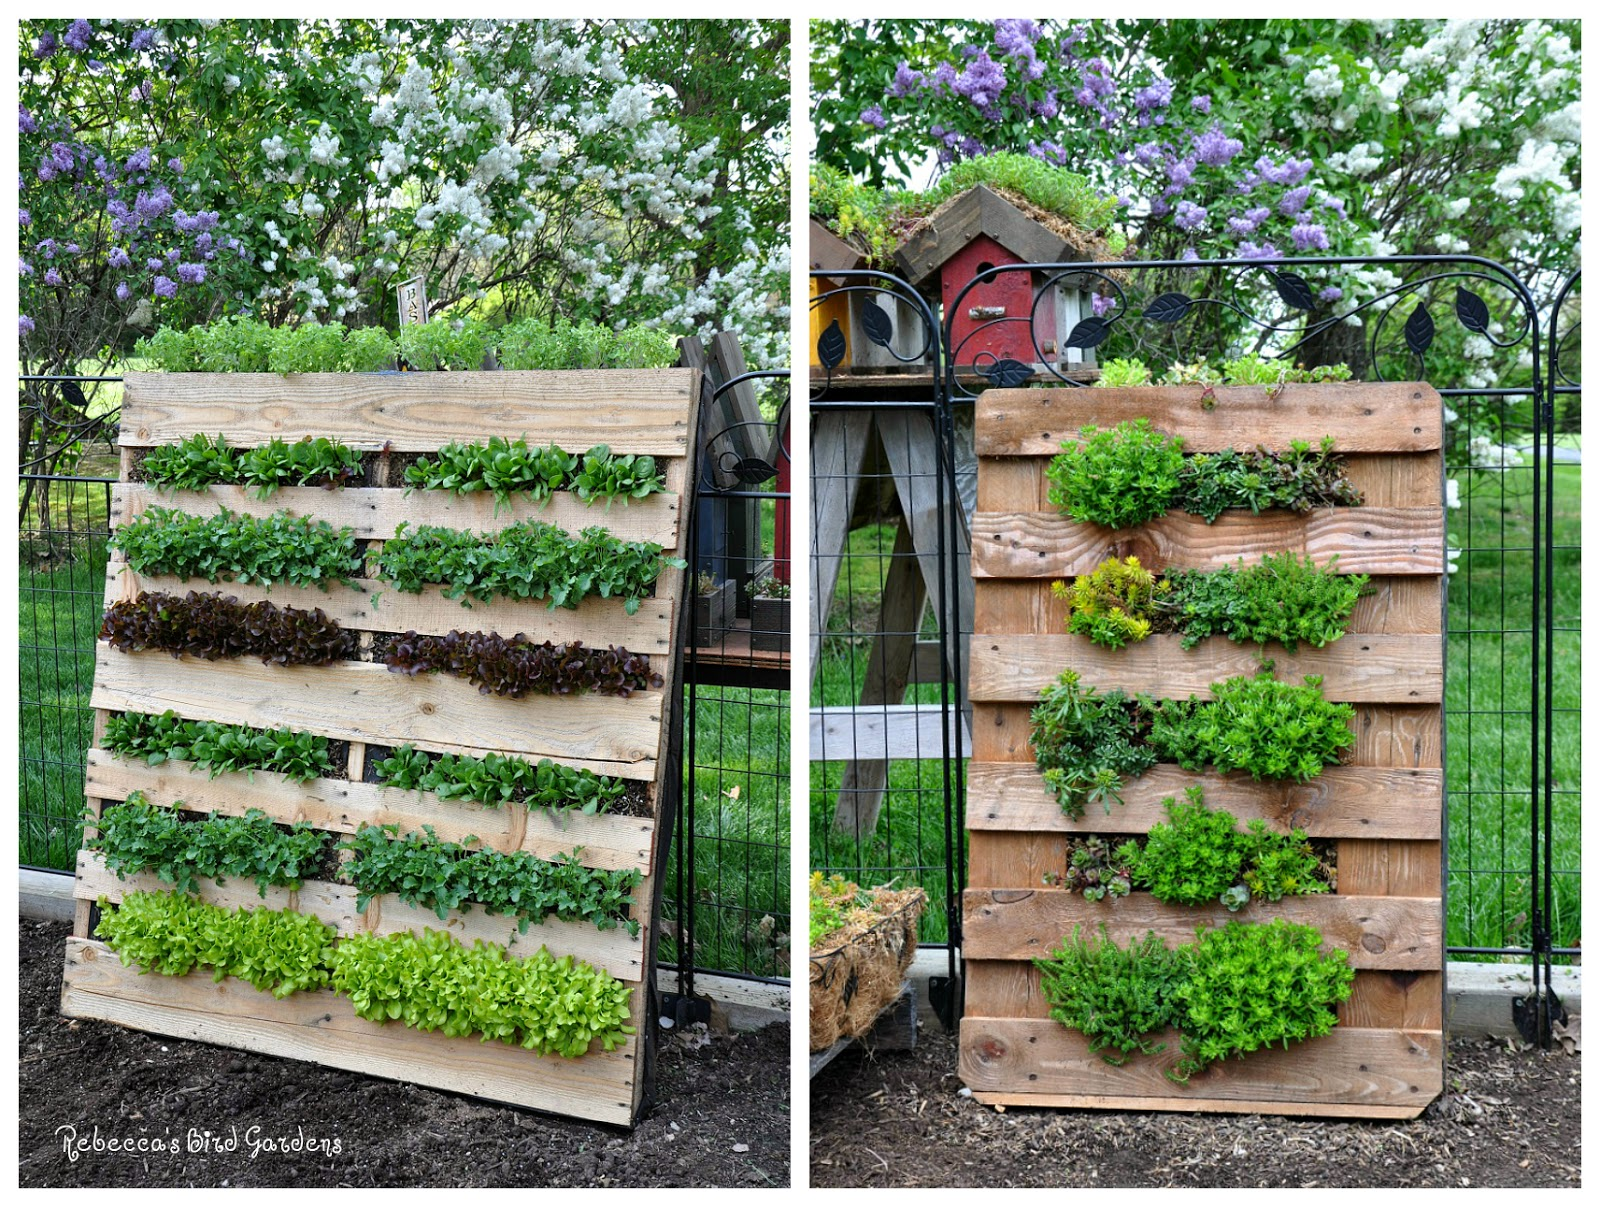 Rebecca's Bird Gardens Blog: DIY Vertical Pallet Garden